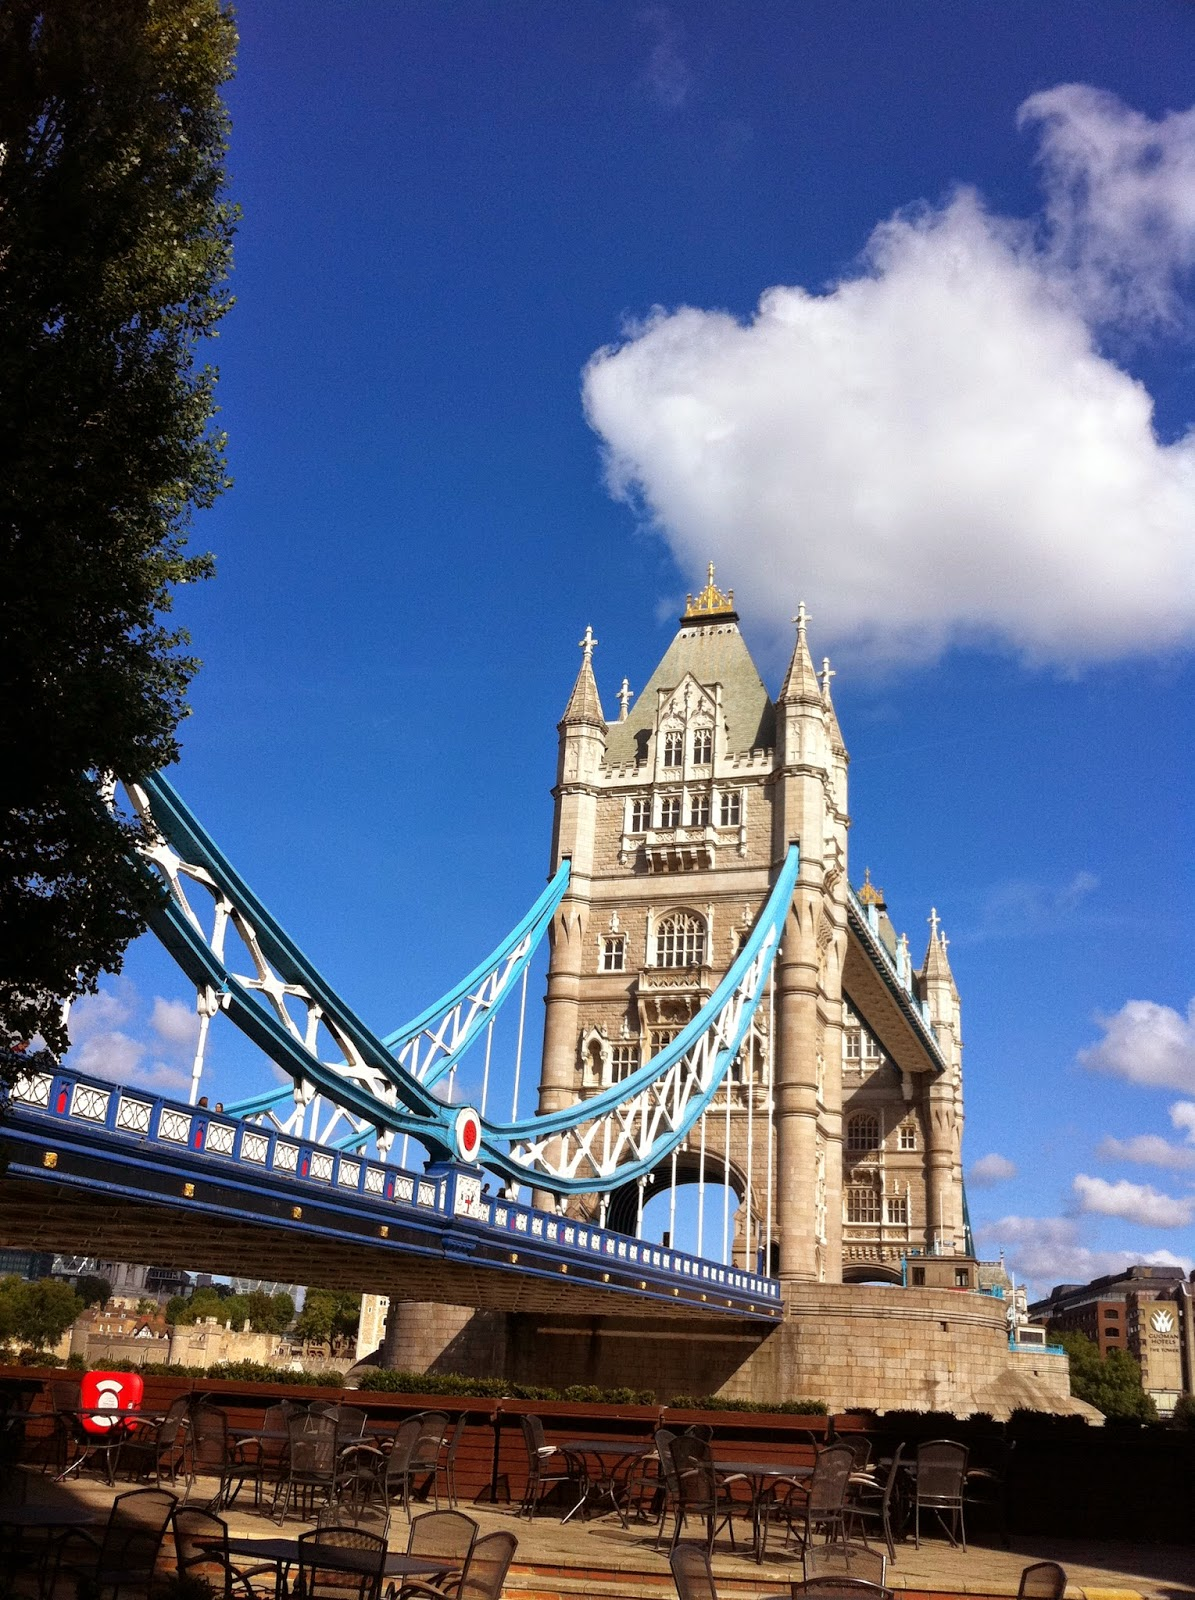 DAILY SCHMANKERL : Tower Bridge, Sightseeing in sunny London